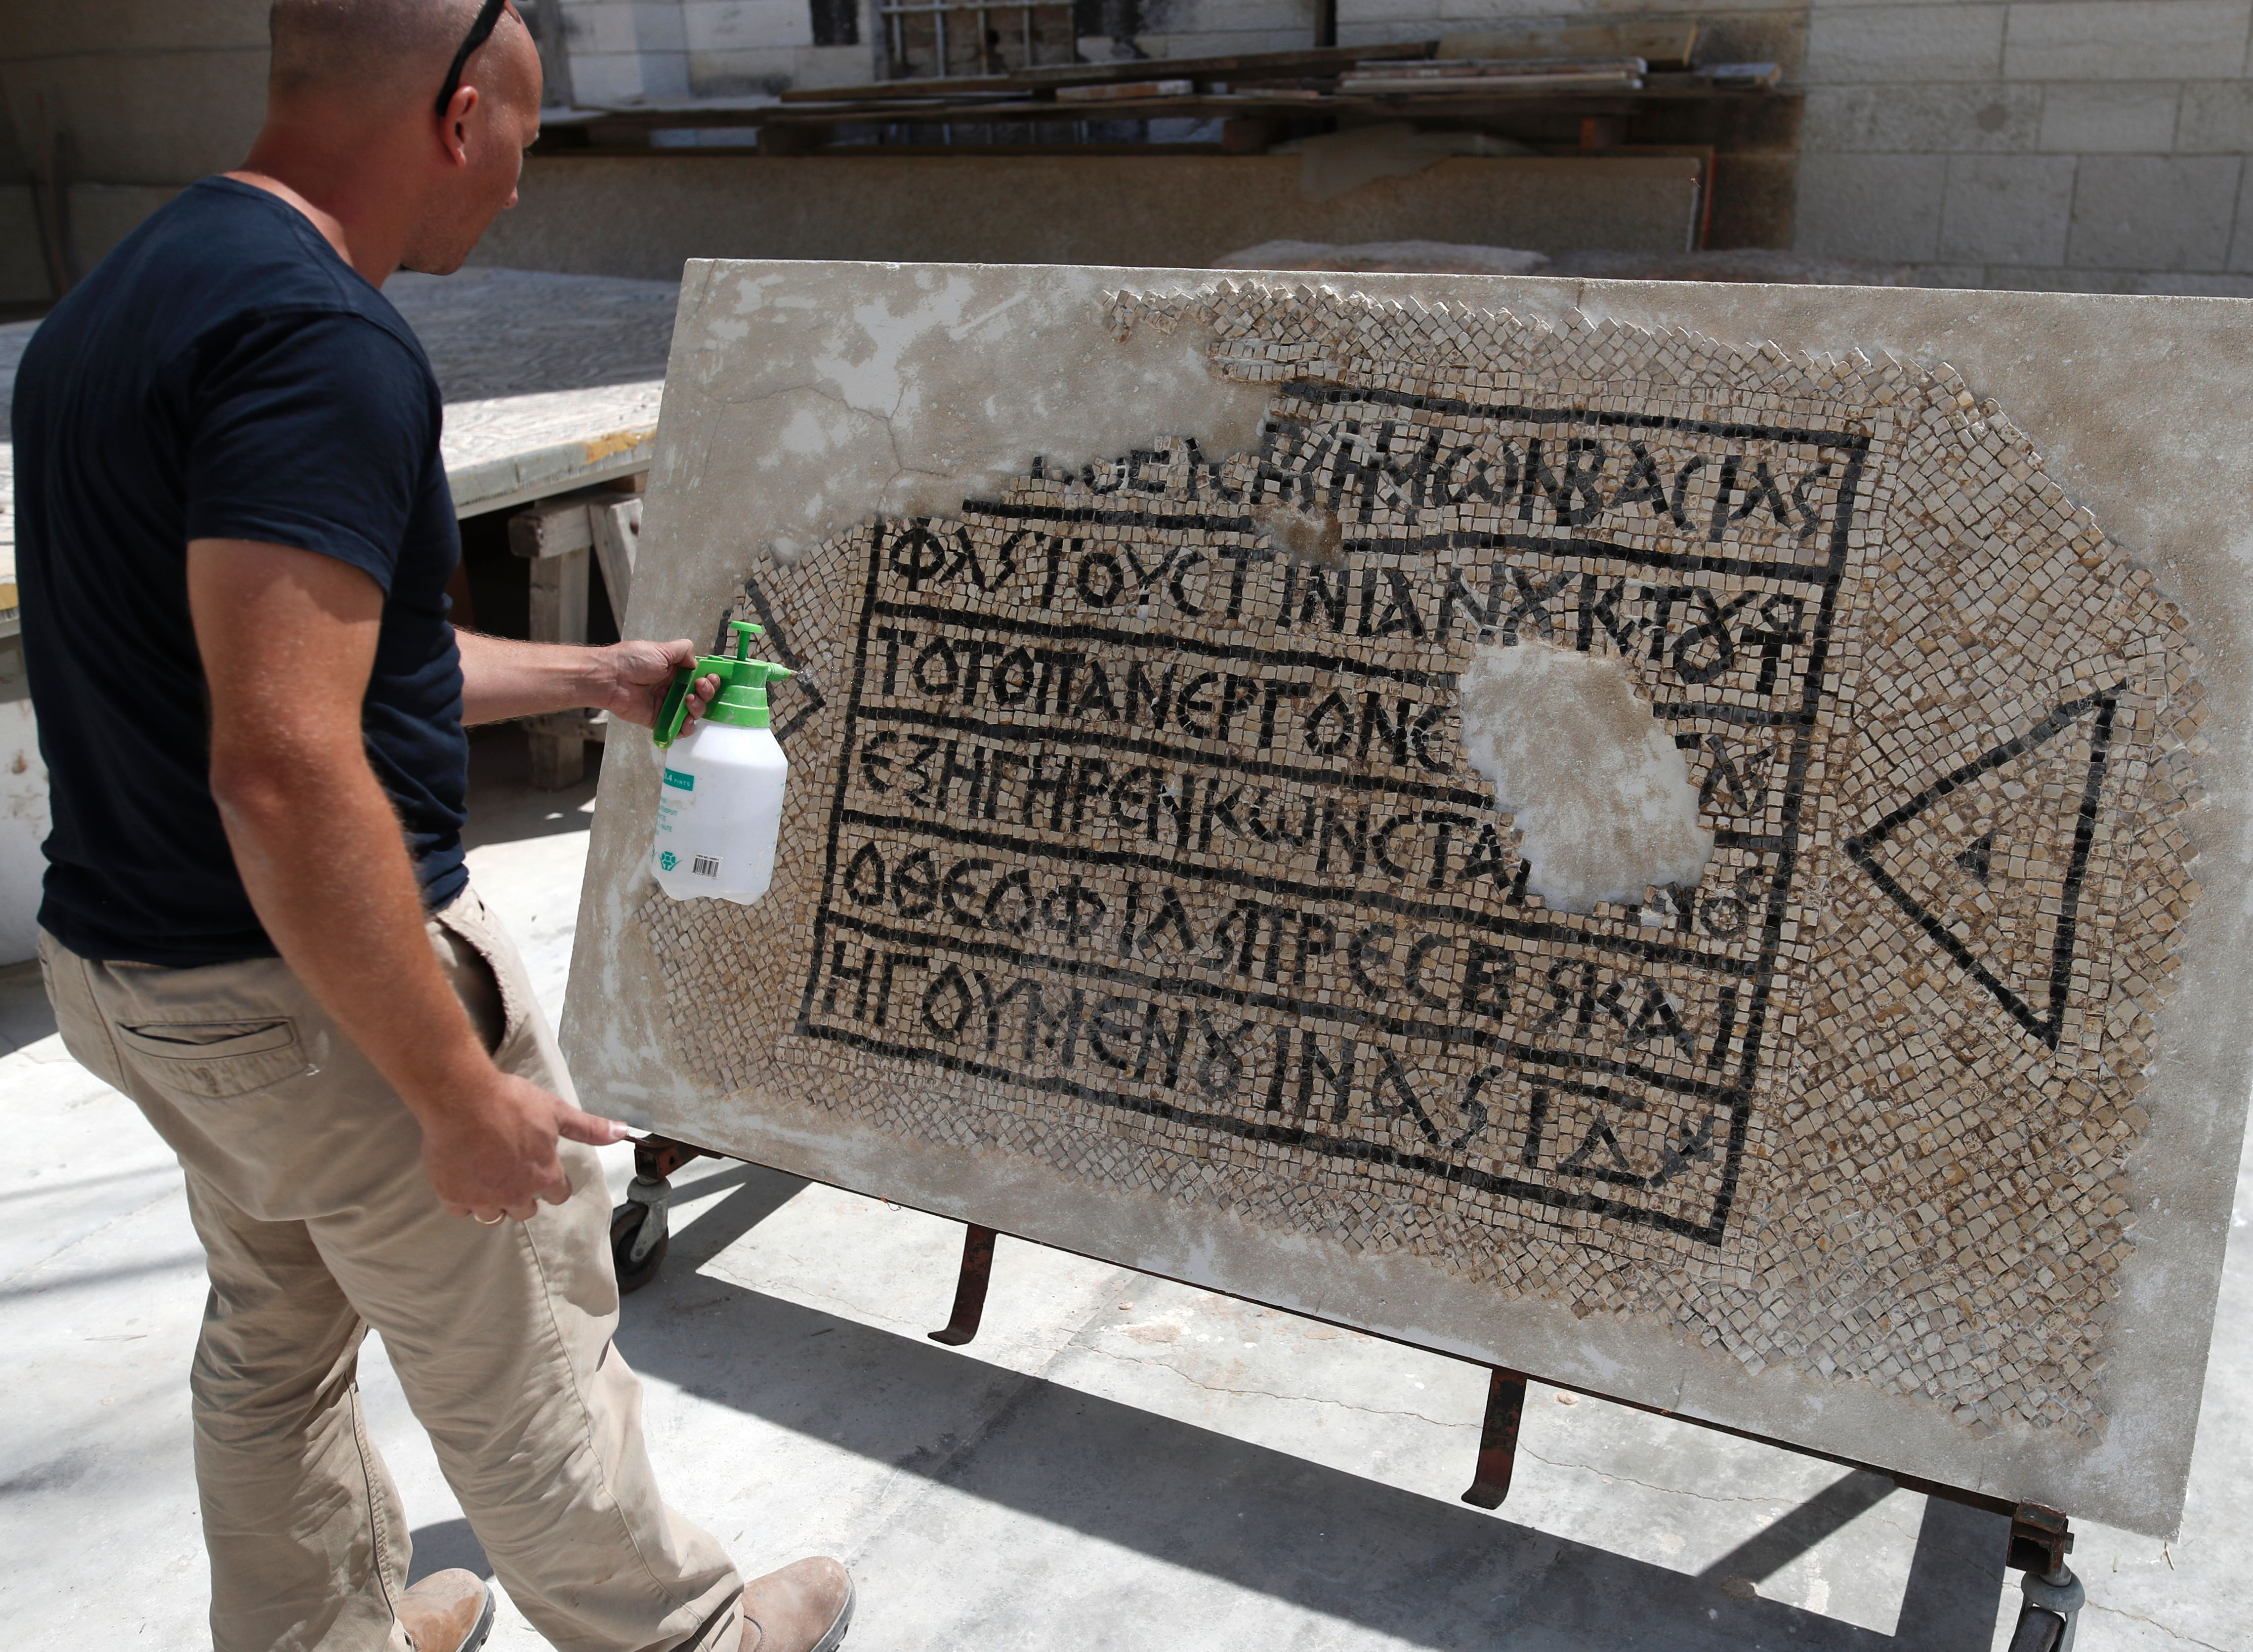 An archaeologist works on part of a 1,500-year-old mosaic floor bearing the names of Byzantine Emperor Justinian, at the Rockefeller Museum in Jerusalem, on August 23, 2017, after they unearth a portion of ancient mosaic near the city's Damascus Gate. (AHMAD GHARABLI/AFP/Getty Images)